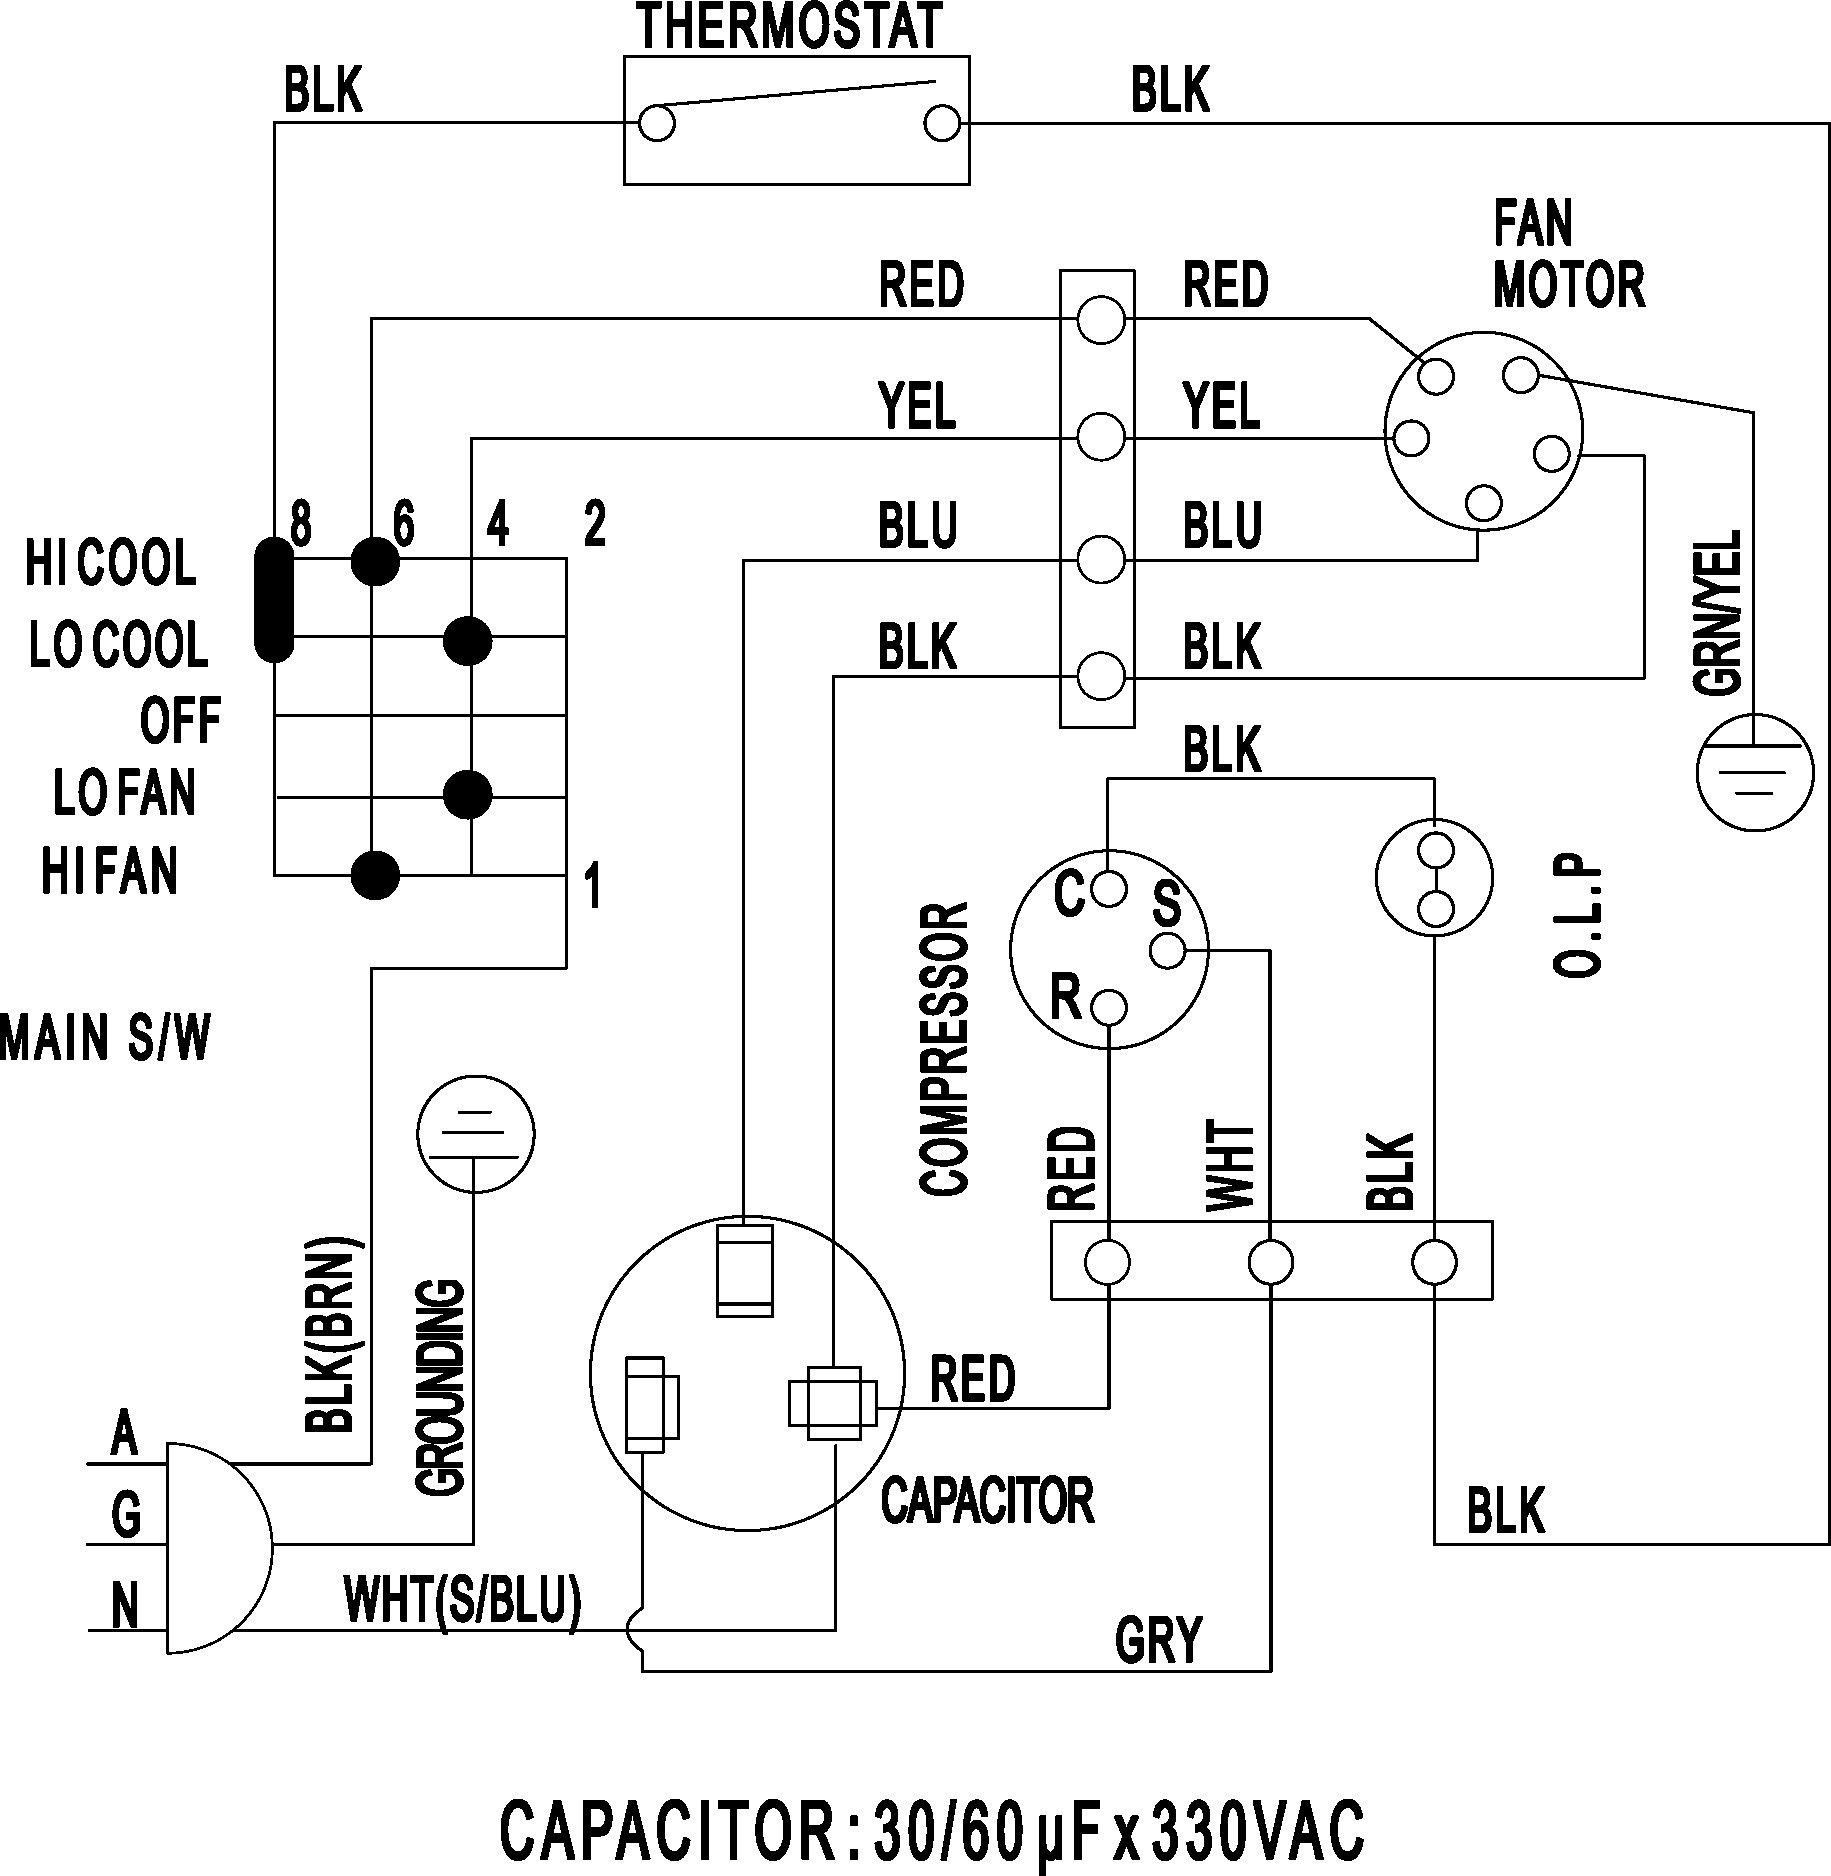 goodman condensing unit wiring diagram wiring diagrams for hvac wiring diagram data  wiring diagrams for hvac wiring